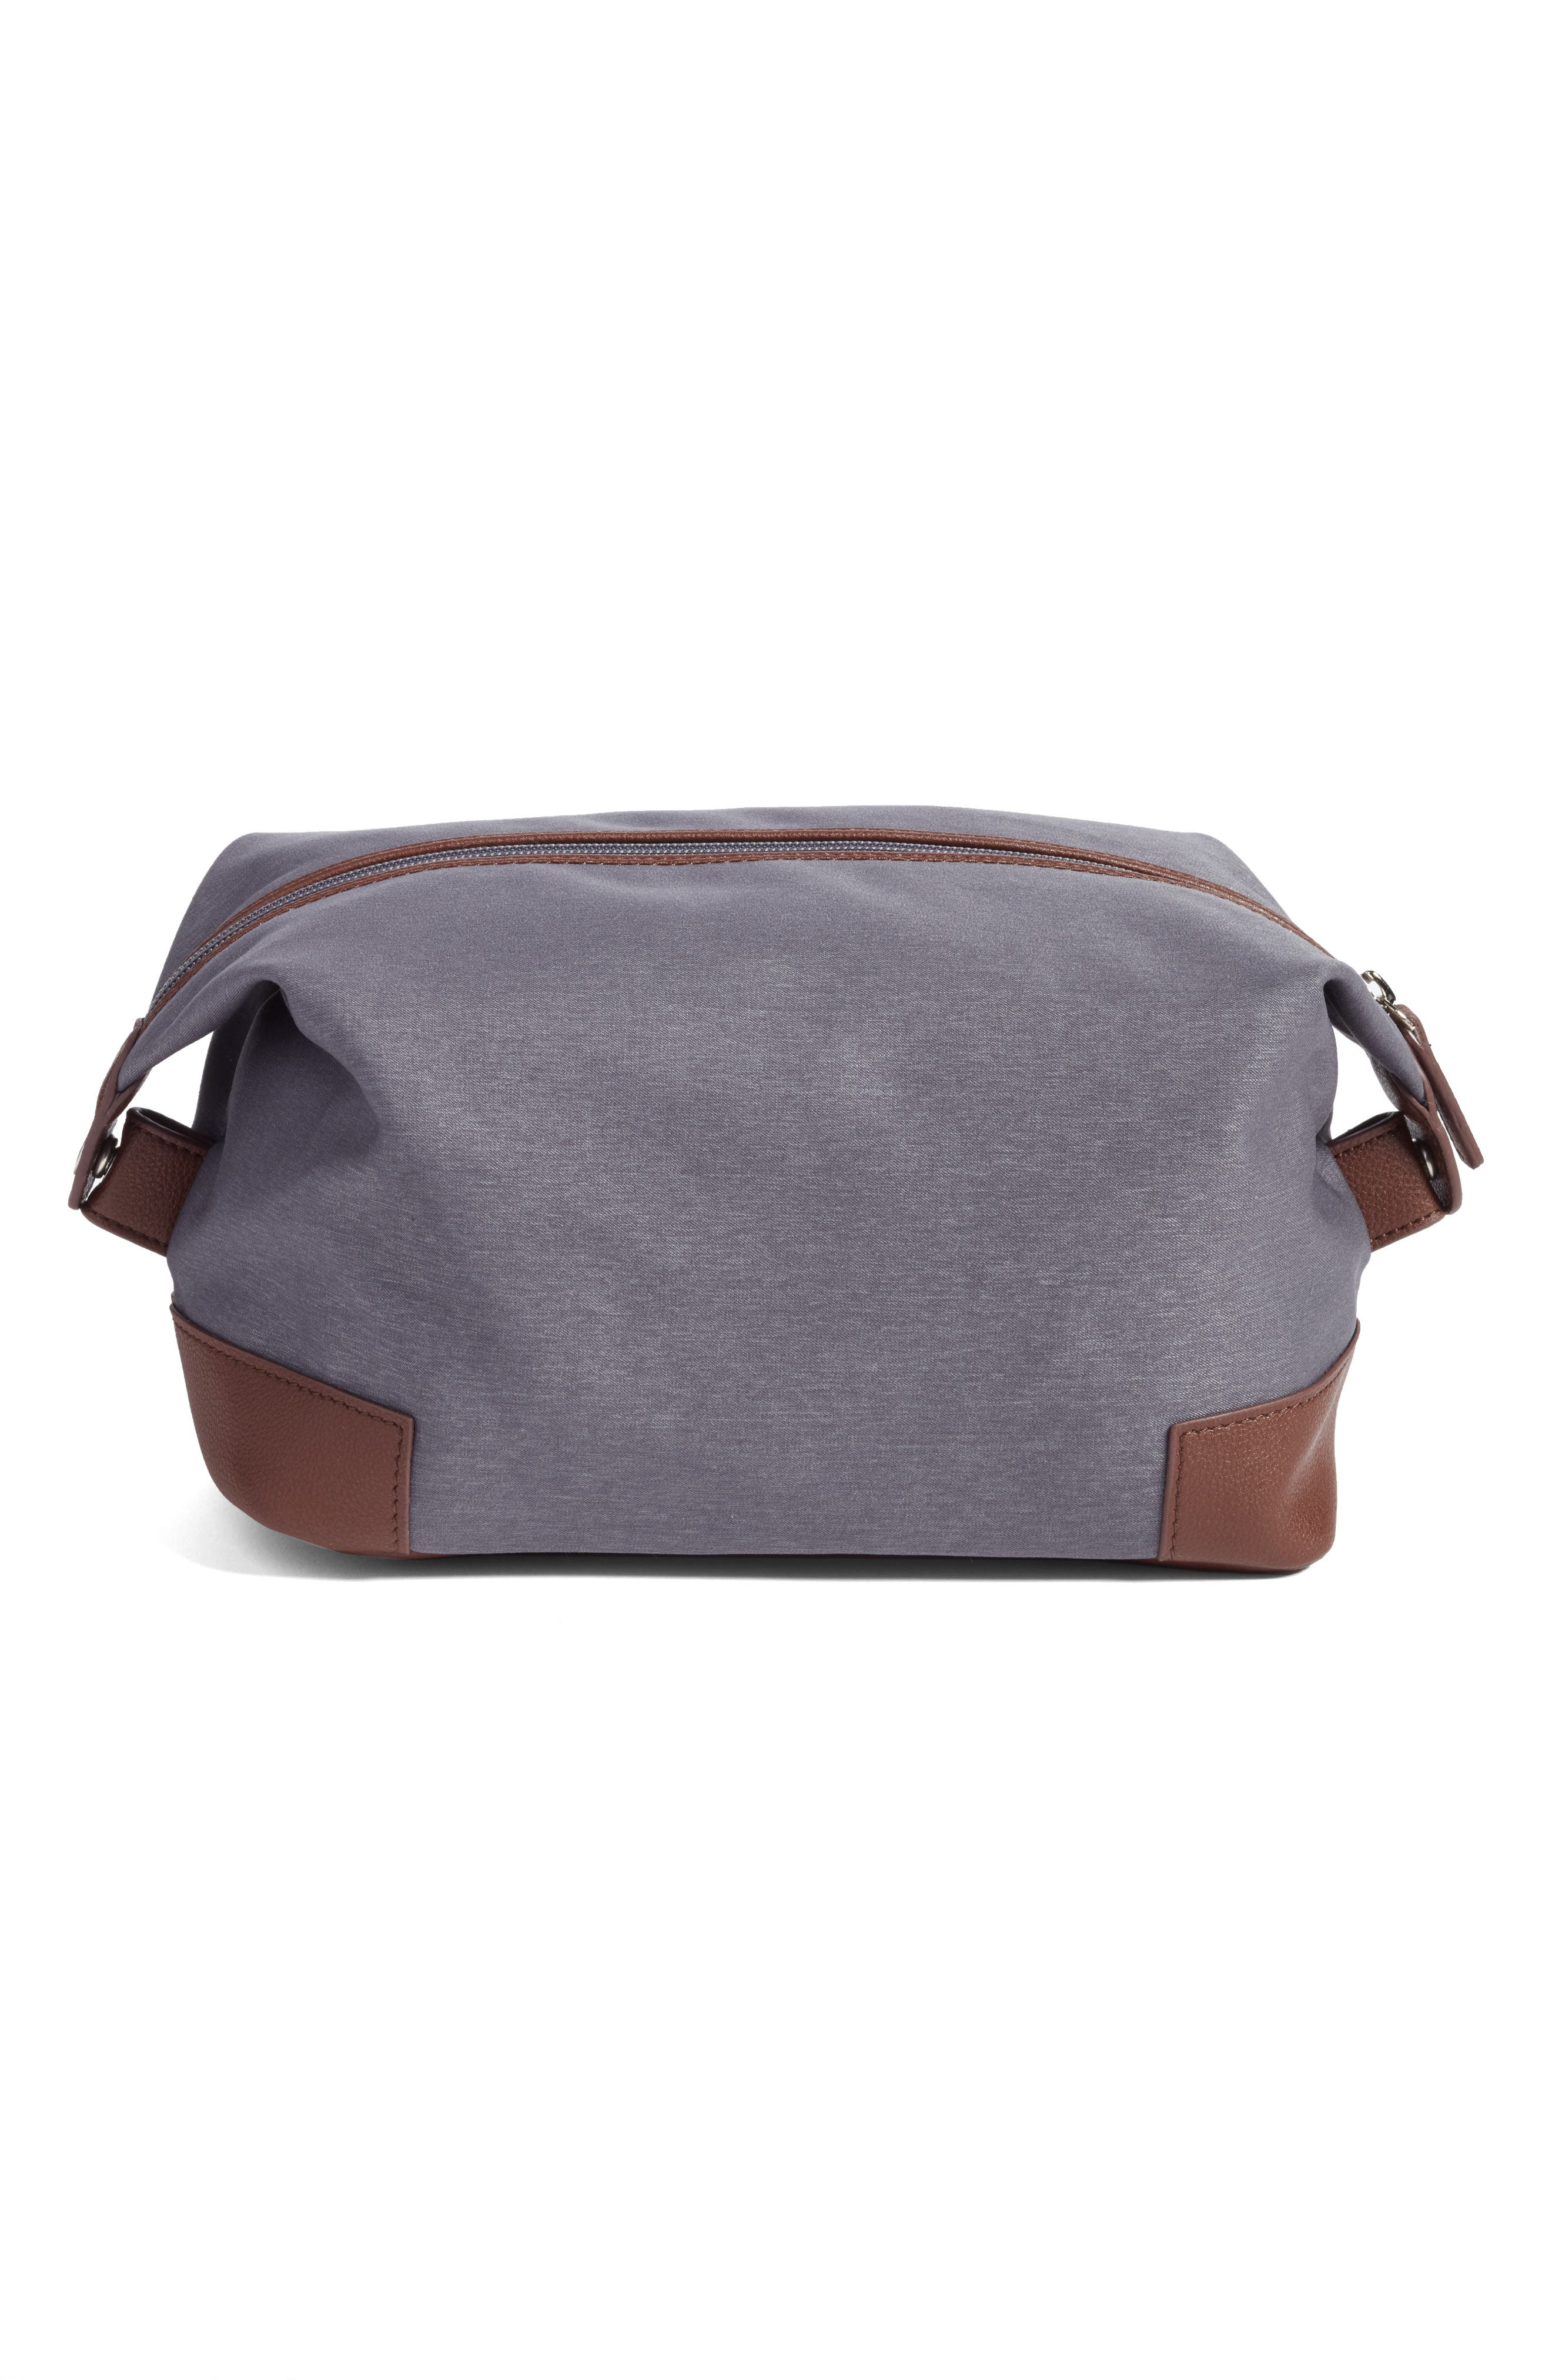 Heathered Twill Dopp Kit,                             Alternate thumbnail 2, color,                             Charcoal